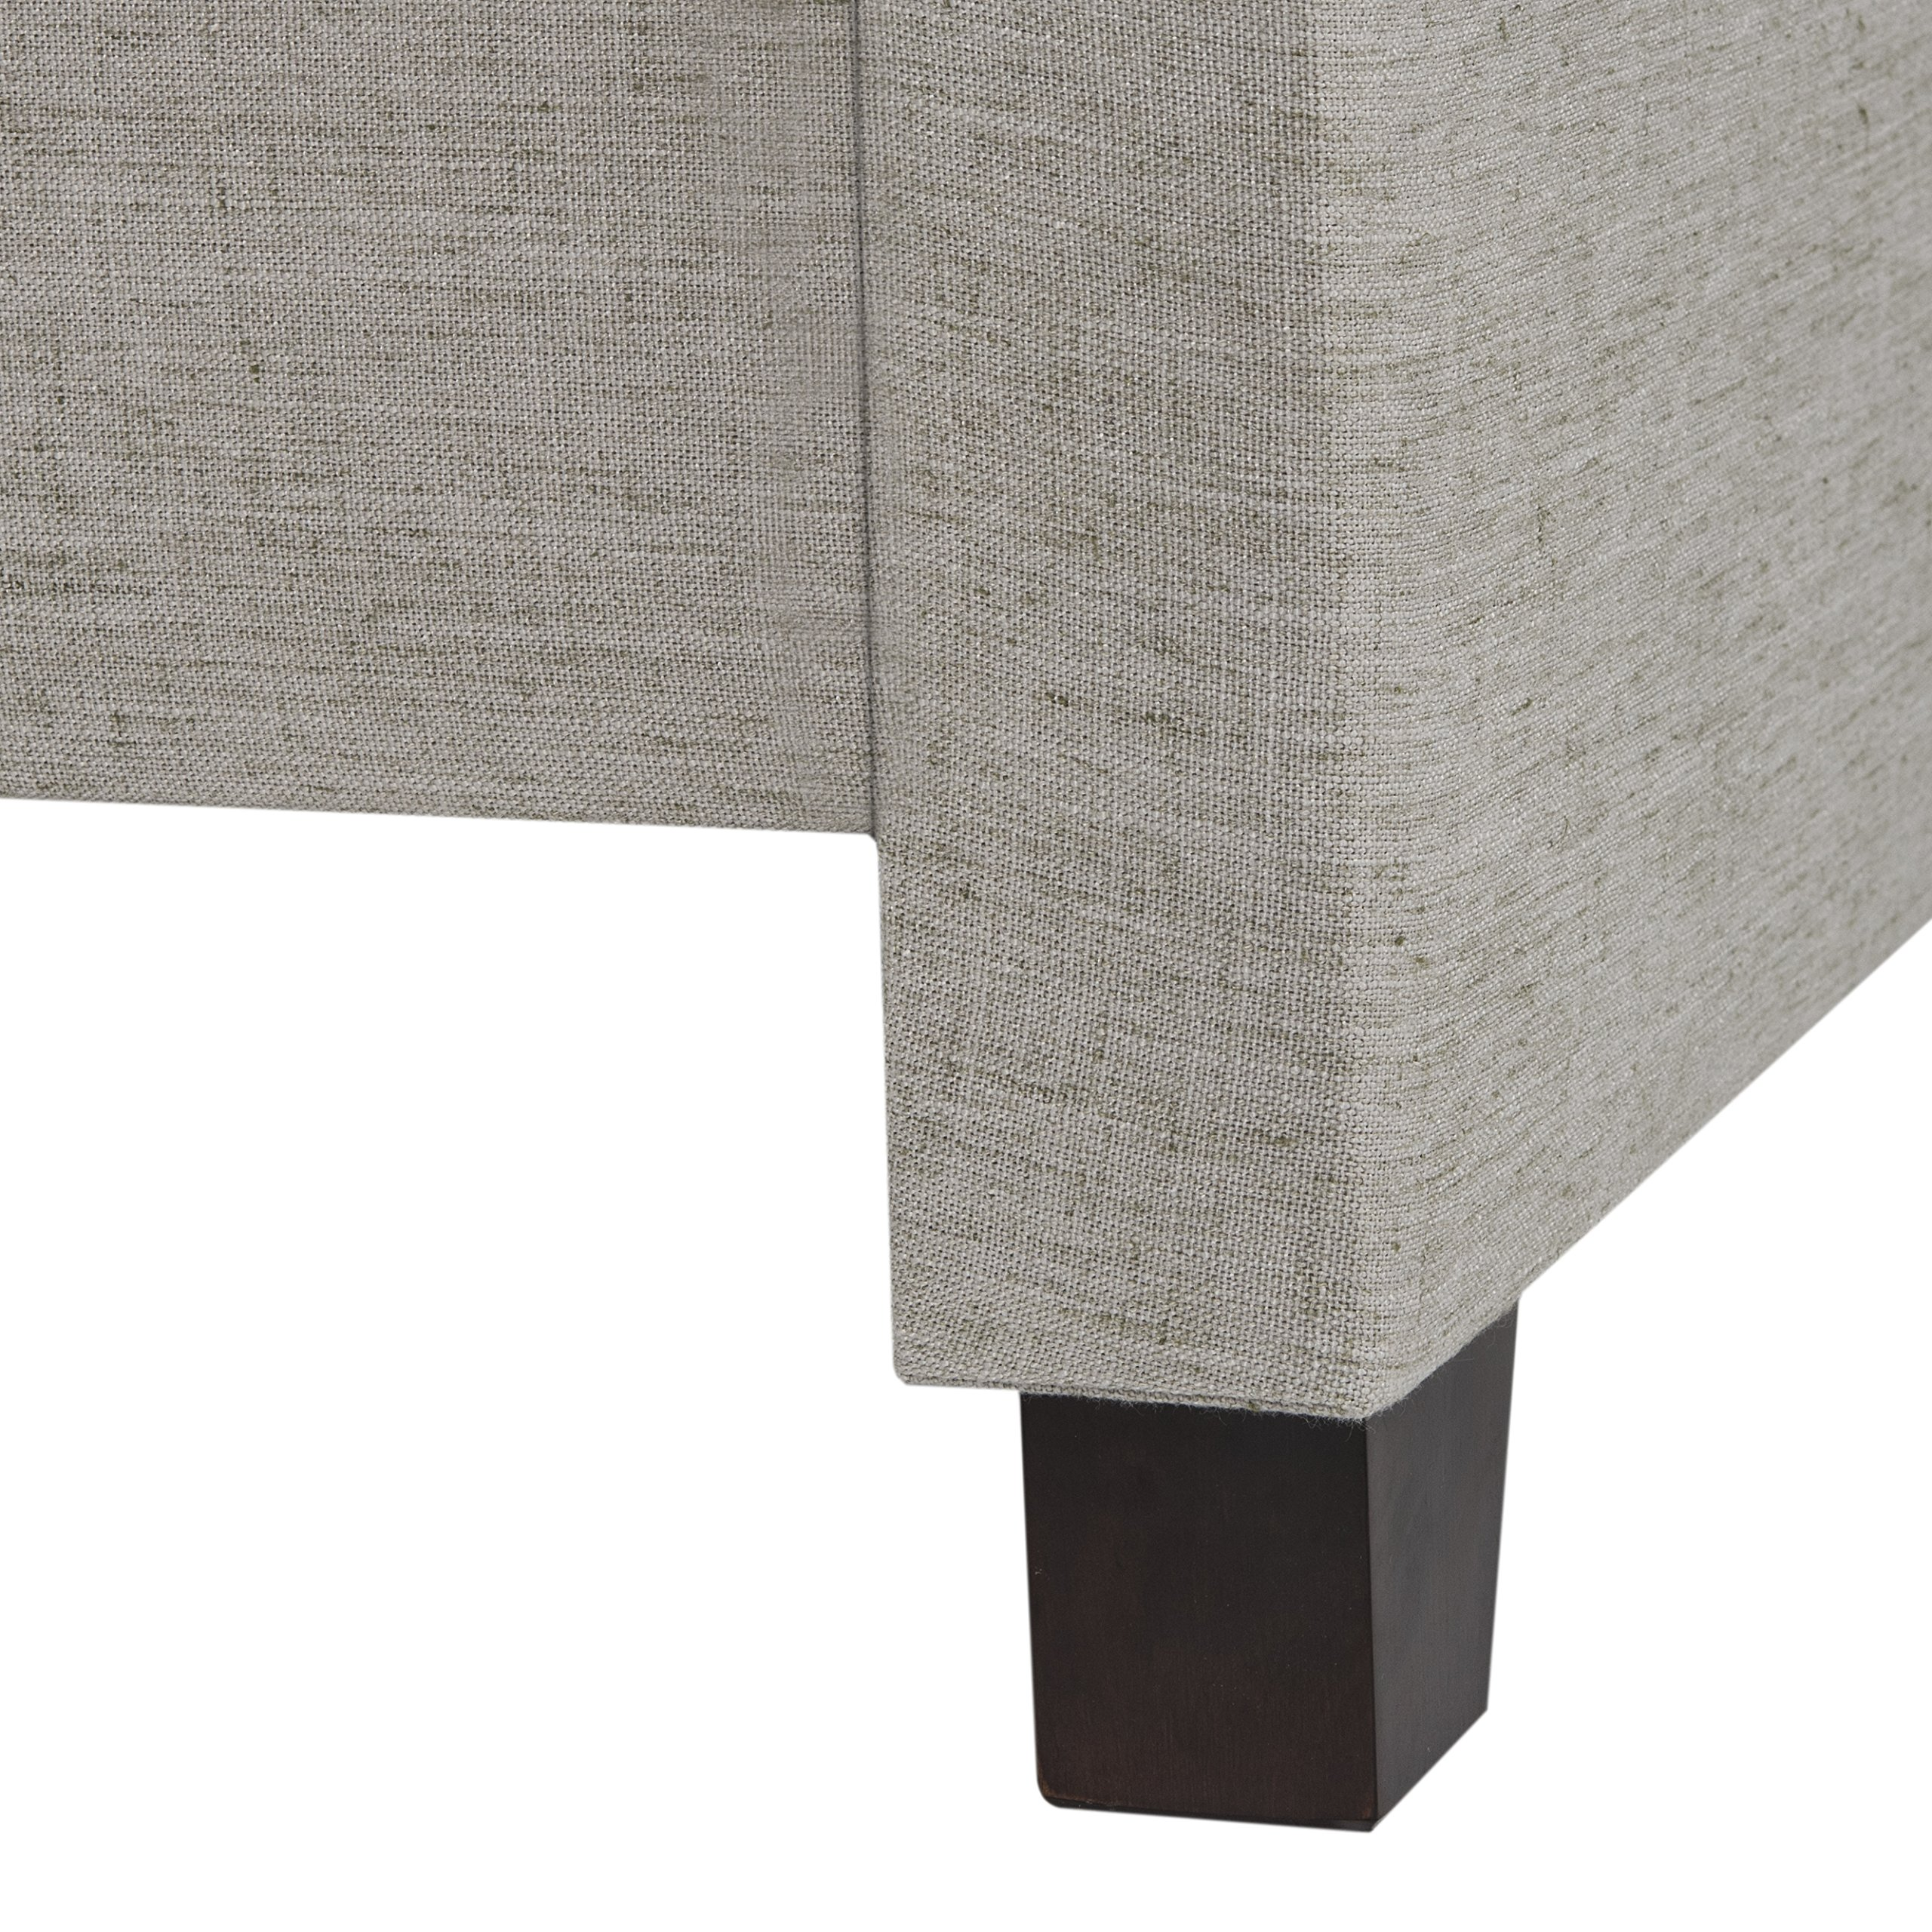 Safavieh Home Collection Theron Light Grey & Espresso Bed, Queen by Safavieh (Image #1)